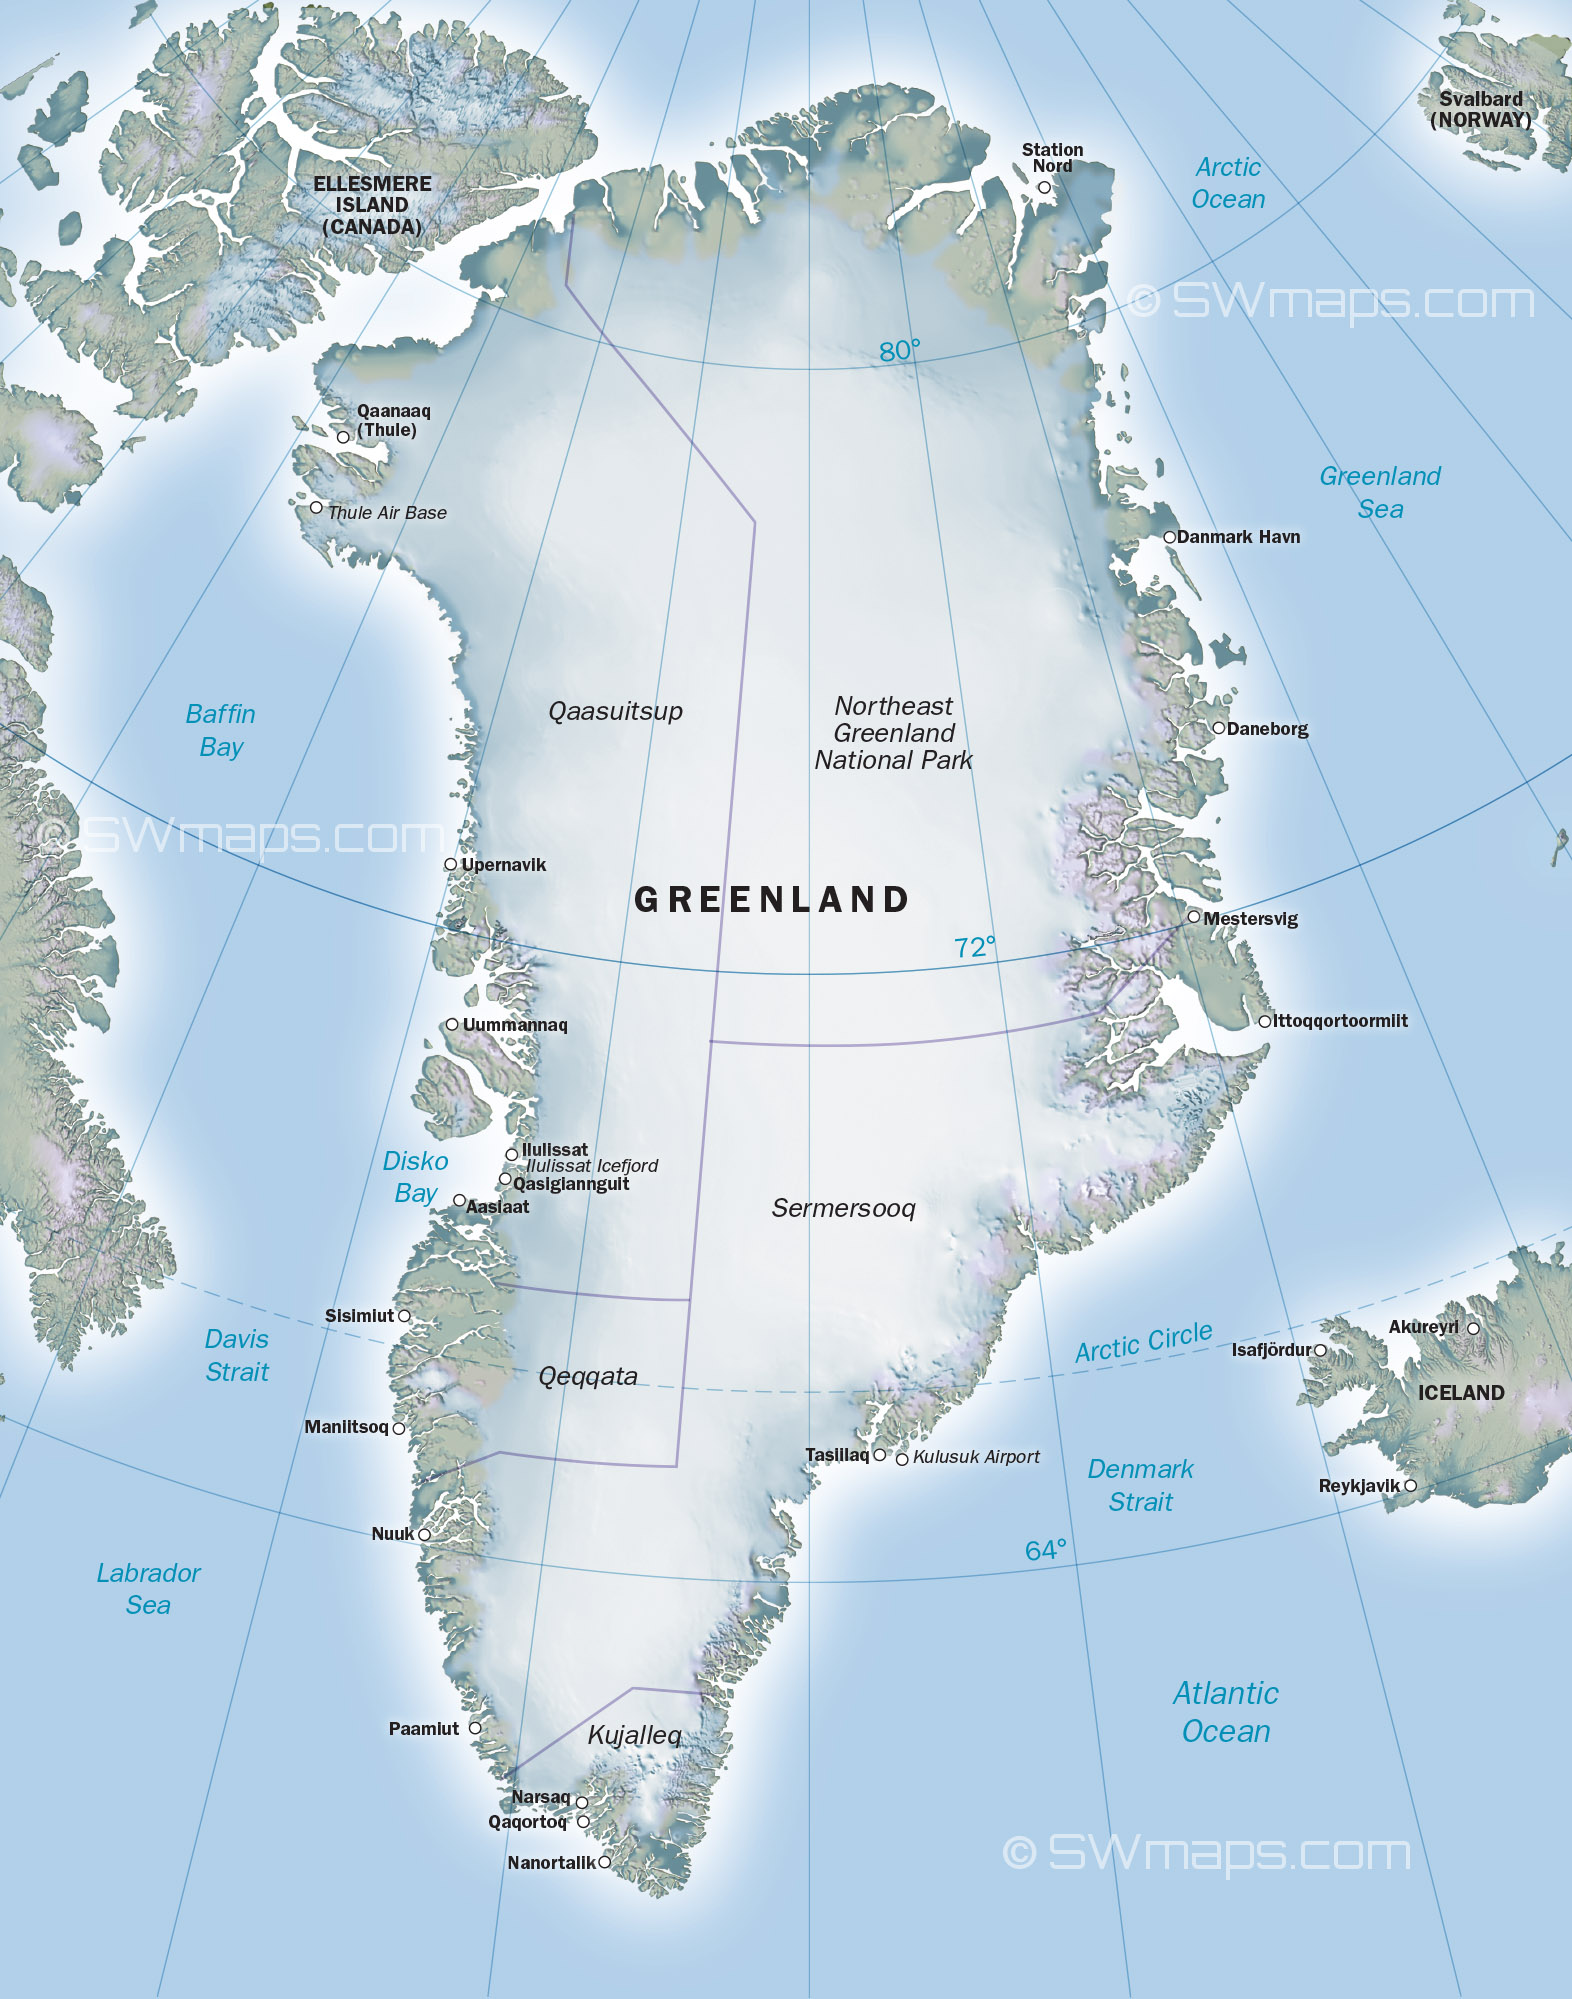 A generic map of Greenland